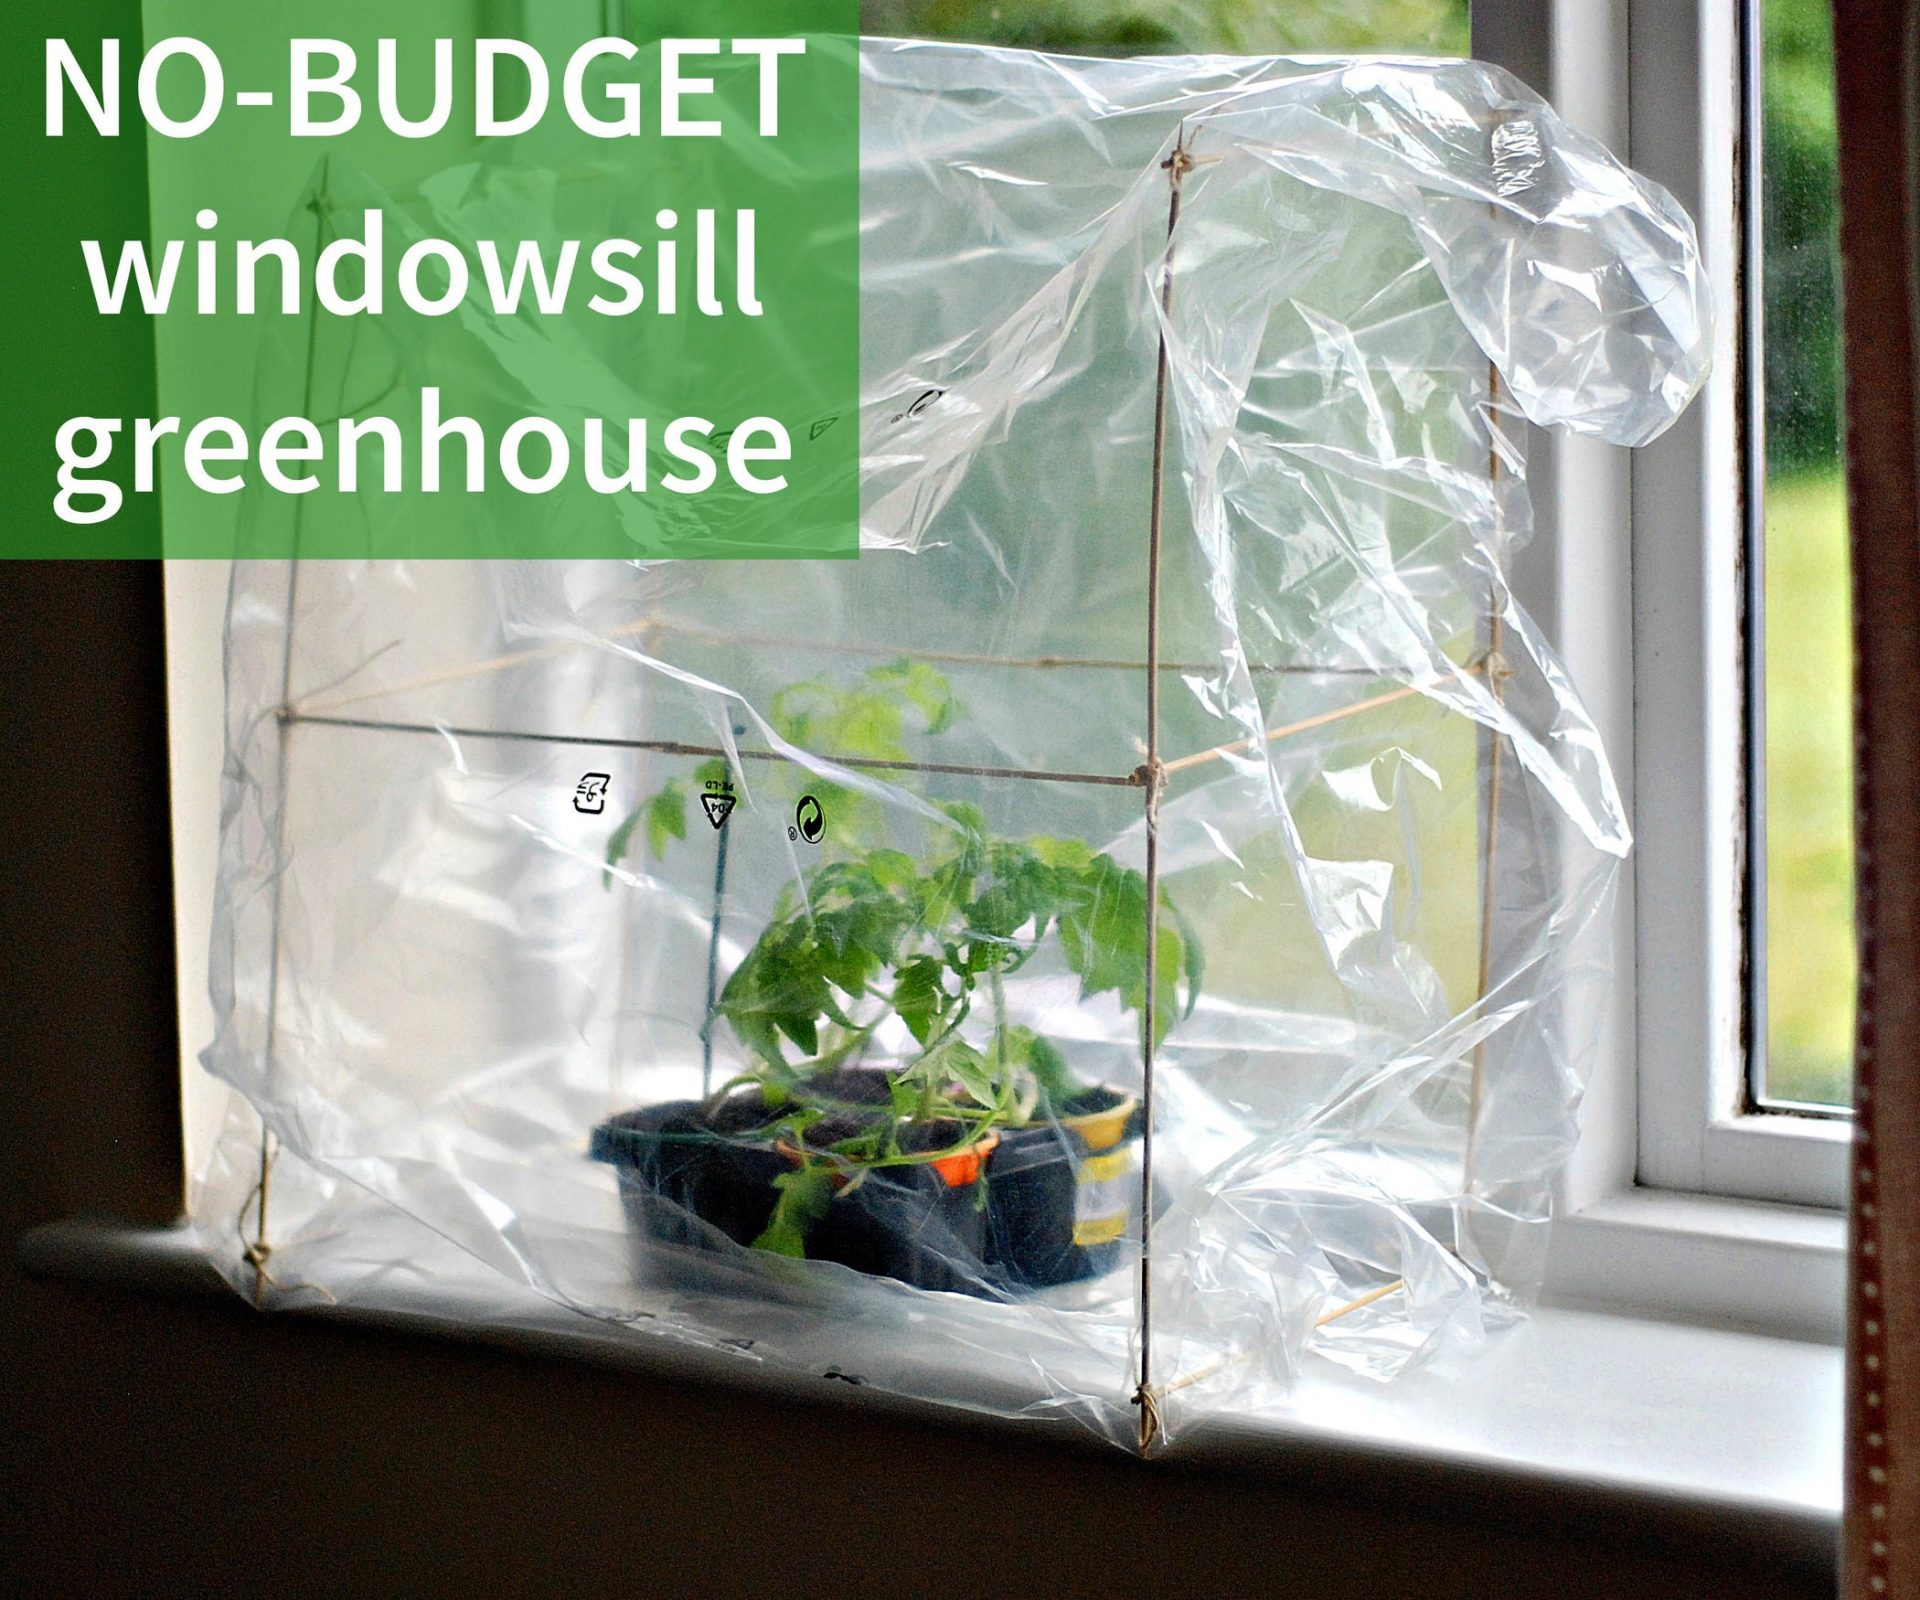 No-Budget Windowsill Greenhouse